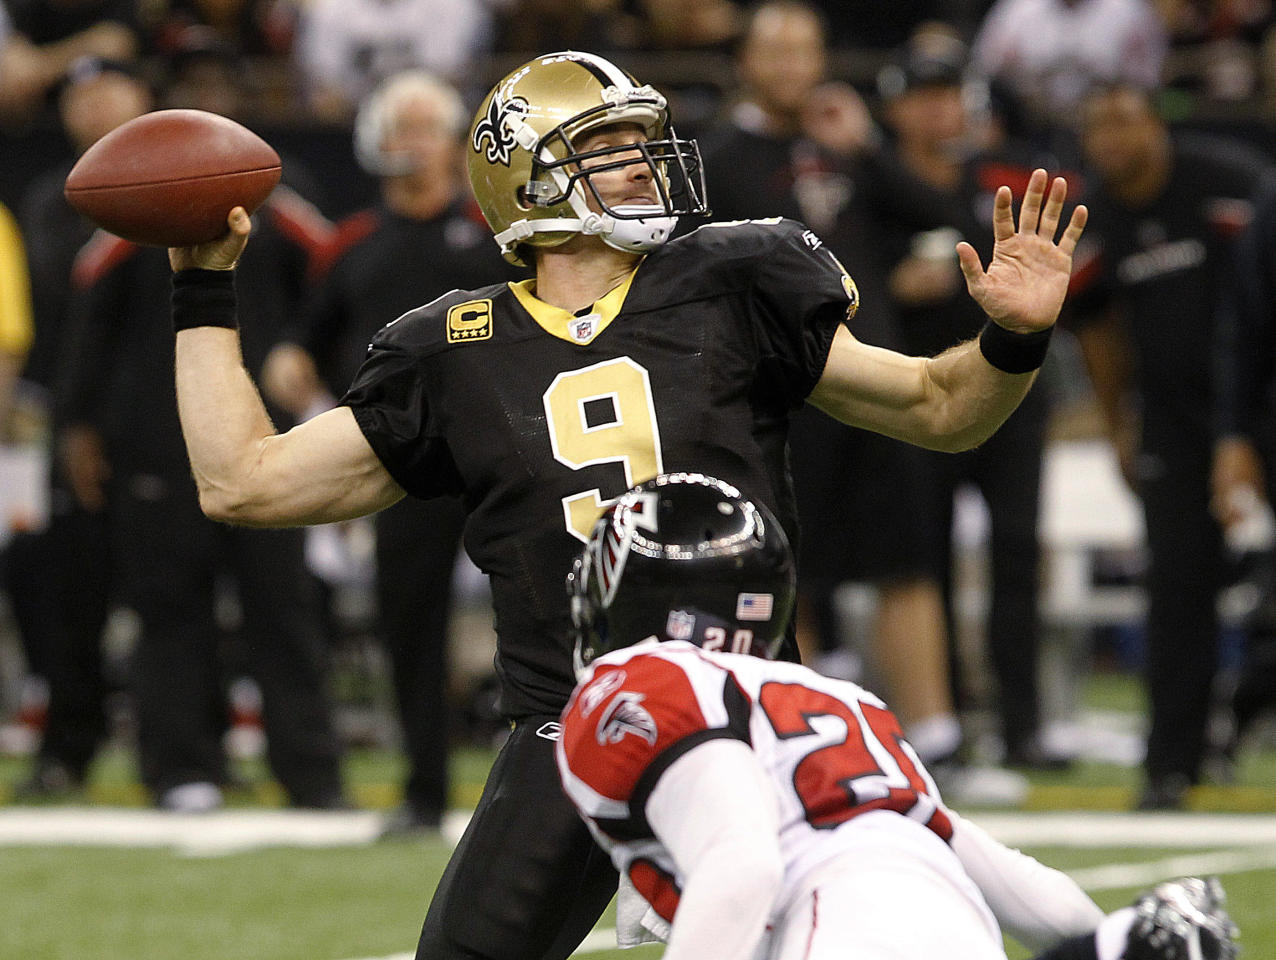 New Orleans Saints quarterback Drew Brees (9) throws a touchdown pass to wide receiver Robert Meachem in the third quarter as Atlanta Falcons' Brent Grimes defends, during an NFL football game in New Orleans, Monday, Dec. 26, 2011. (AP Photo/Bill Haber)